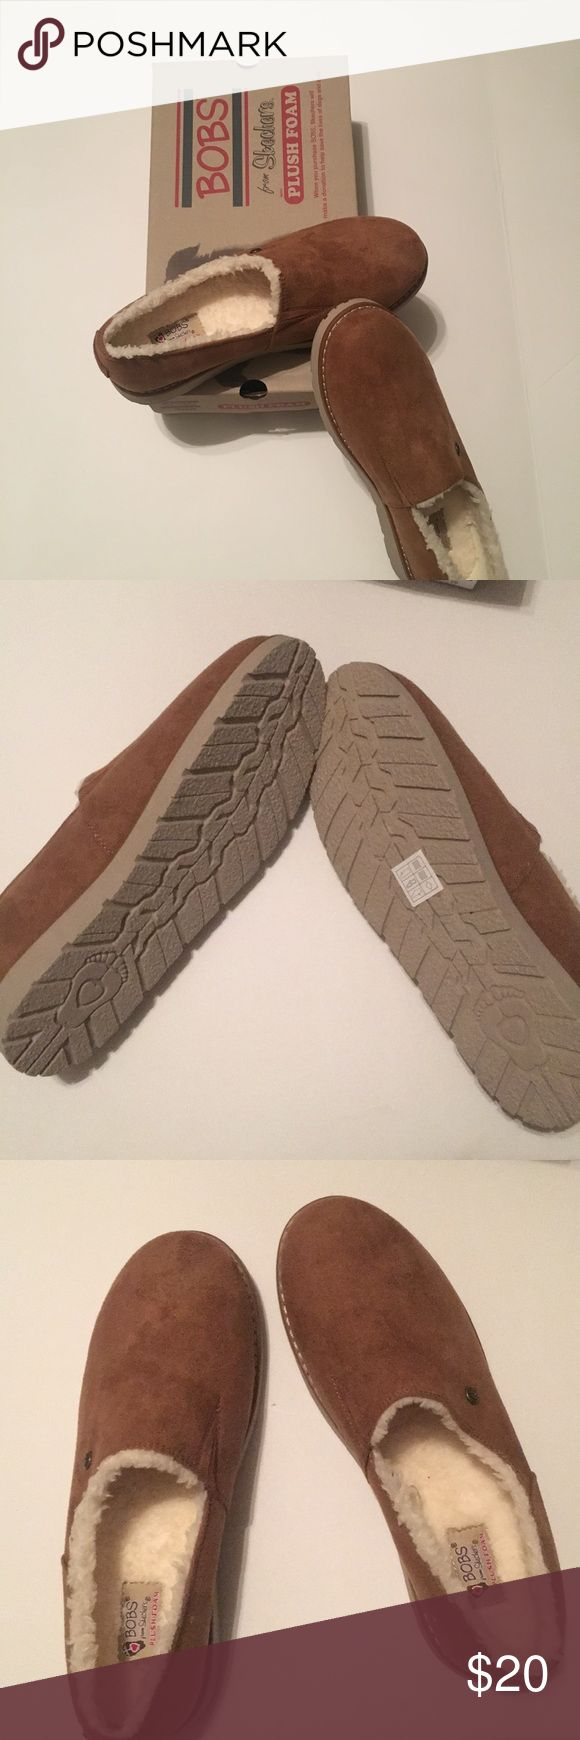 NIB Sketcher's Foam BOBS Shoe's BOBS Plush Foam Skechers. Fur lined beautiful chestnut NIB never worn! Be toasty warm and chic this winter! All day comfort optimal support instant rebound. Skechers Shoes Slippers